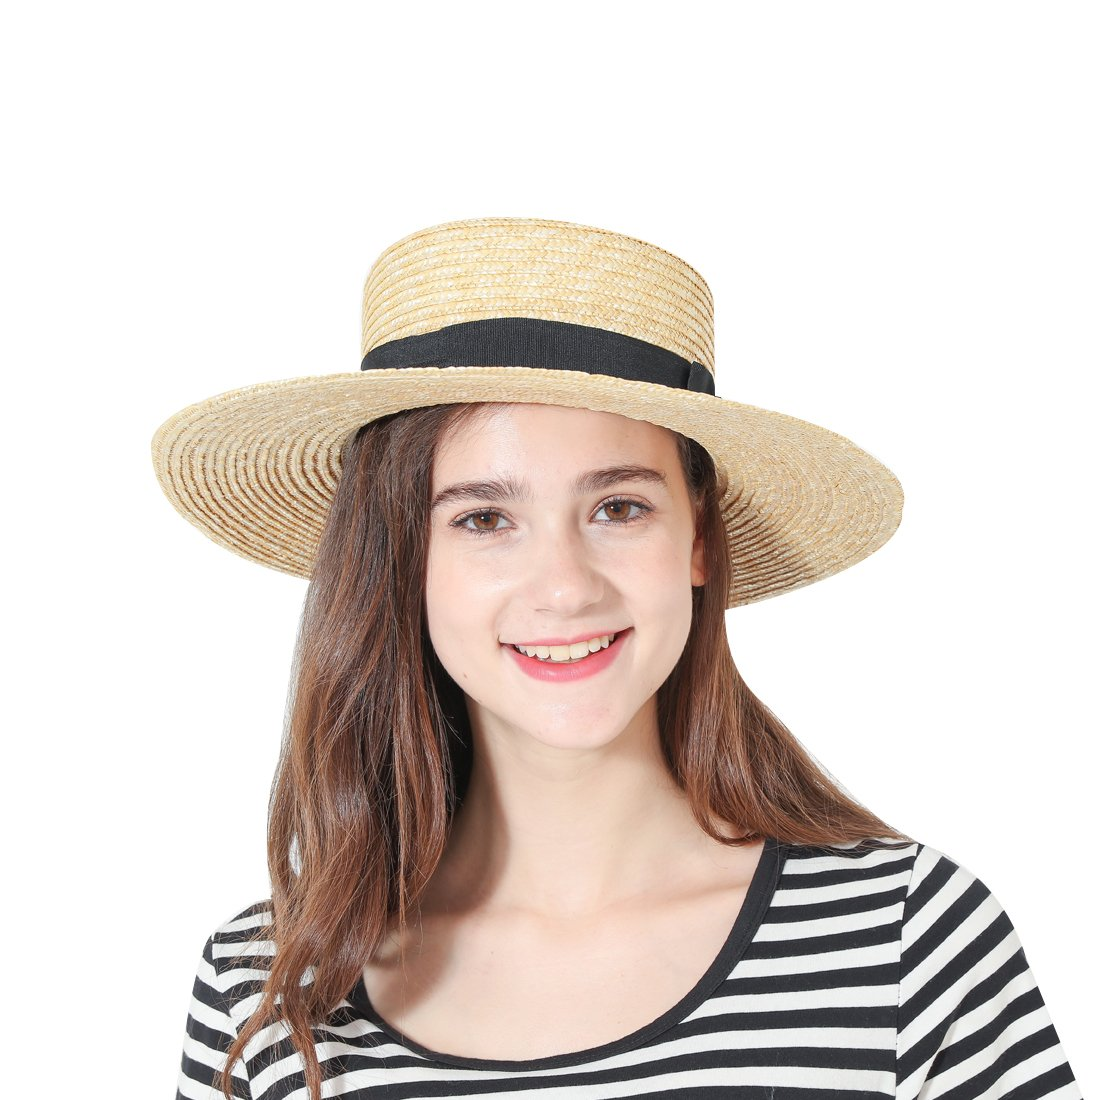 c3887f1059dfc Womens  Panama Sun Hat Boater Handwoven Straw Hat for Summer at Amazon  Women s Clothing store